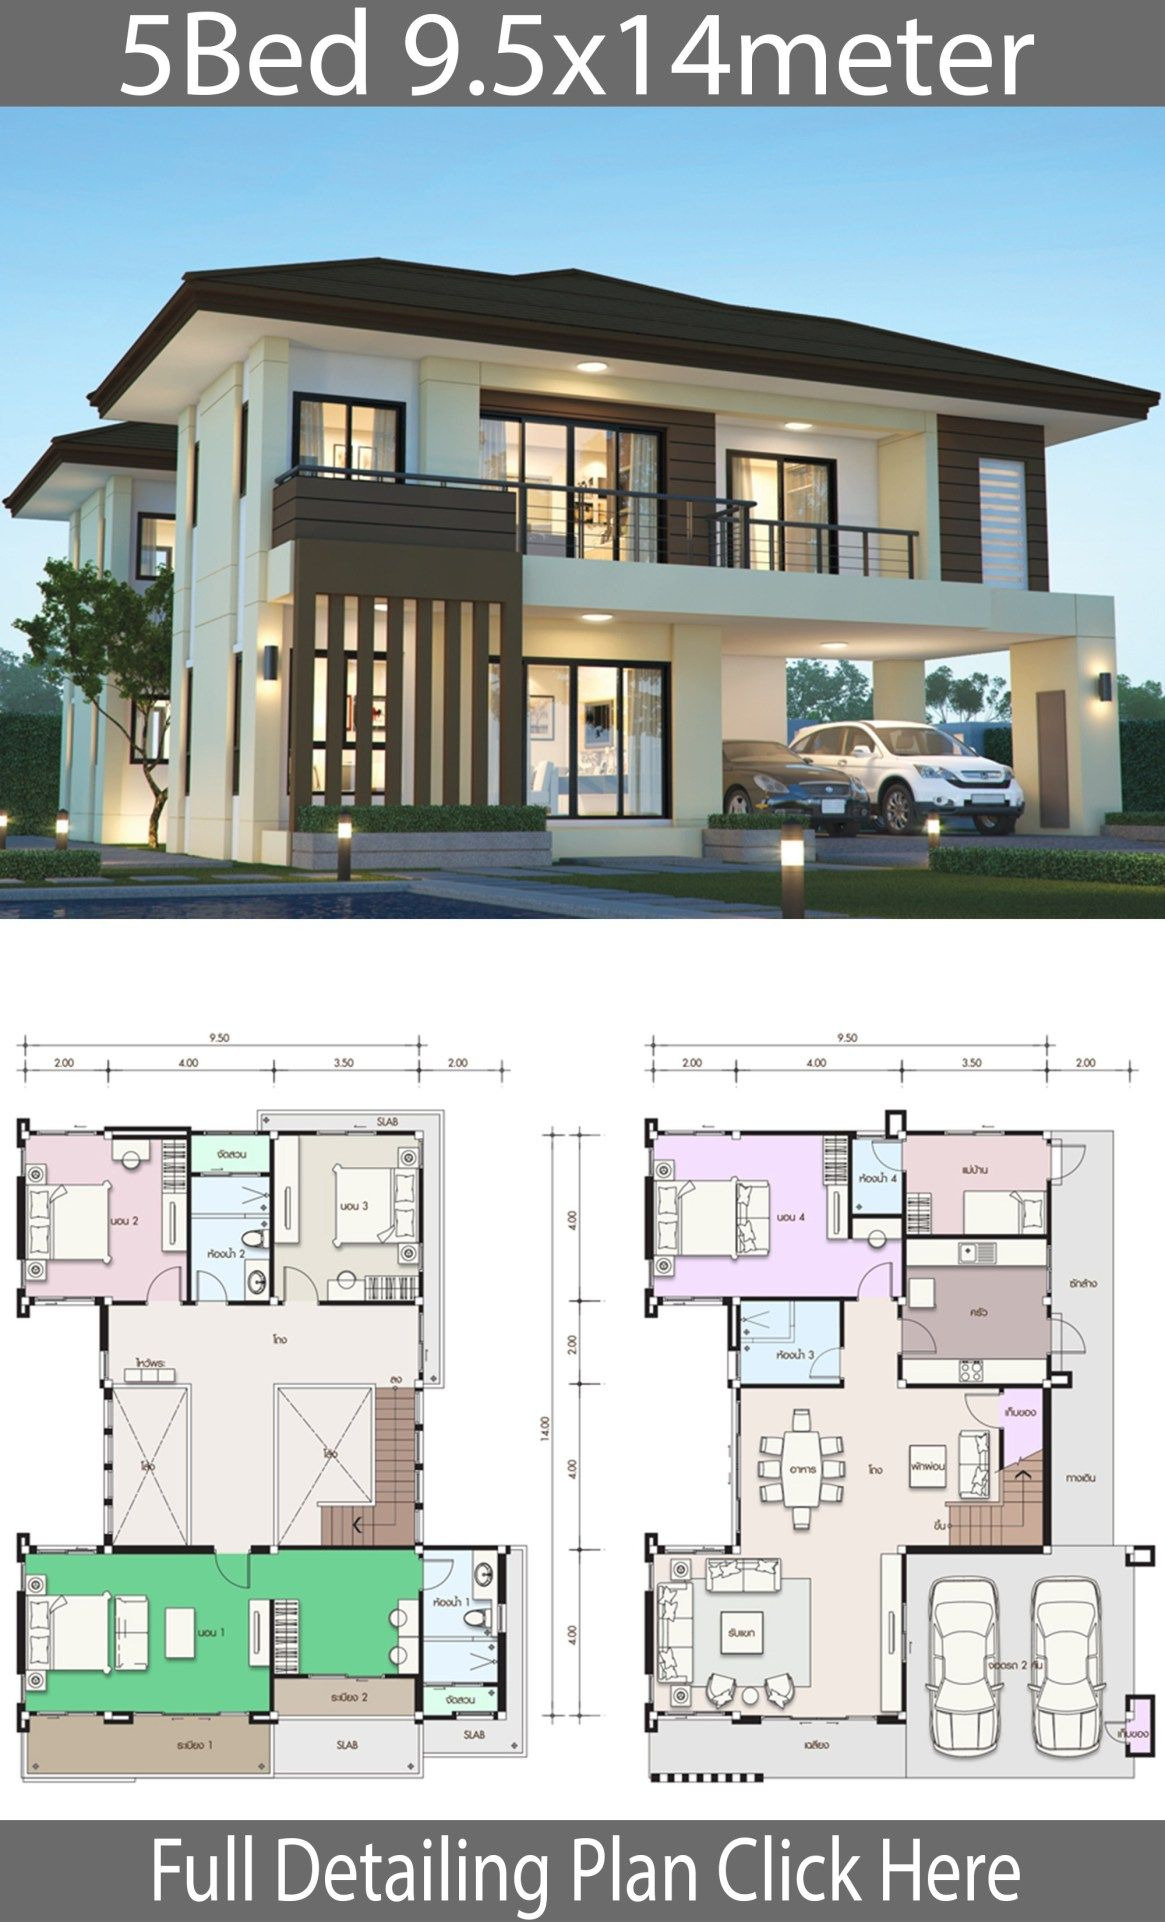 Modern Home Design Plans Beautiful House Design Plan 9 5x14m with 5 Bedrooms